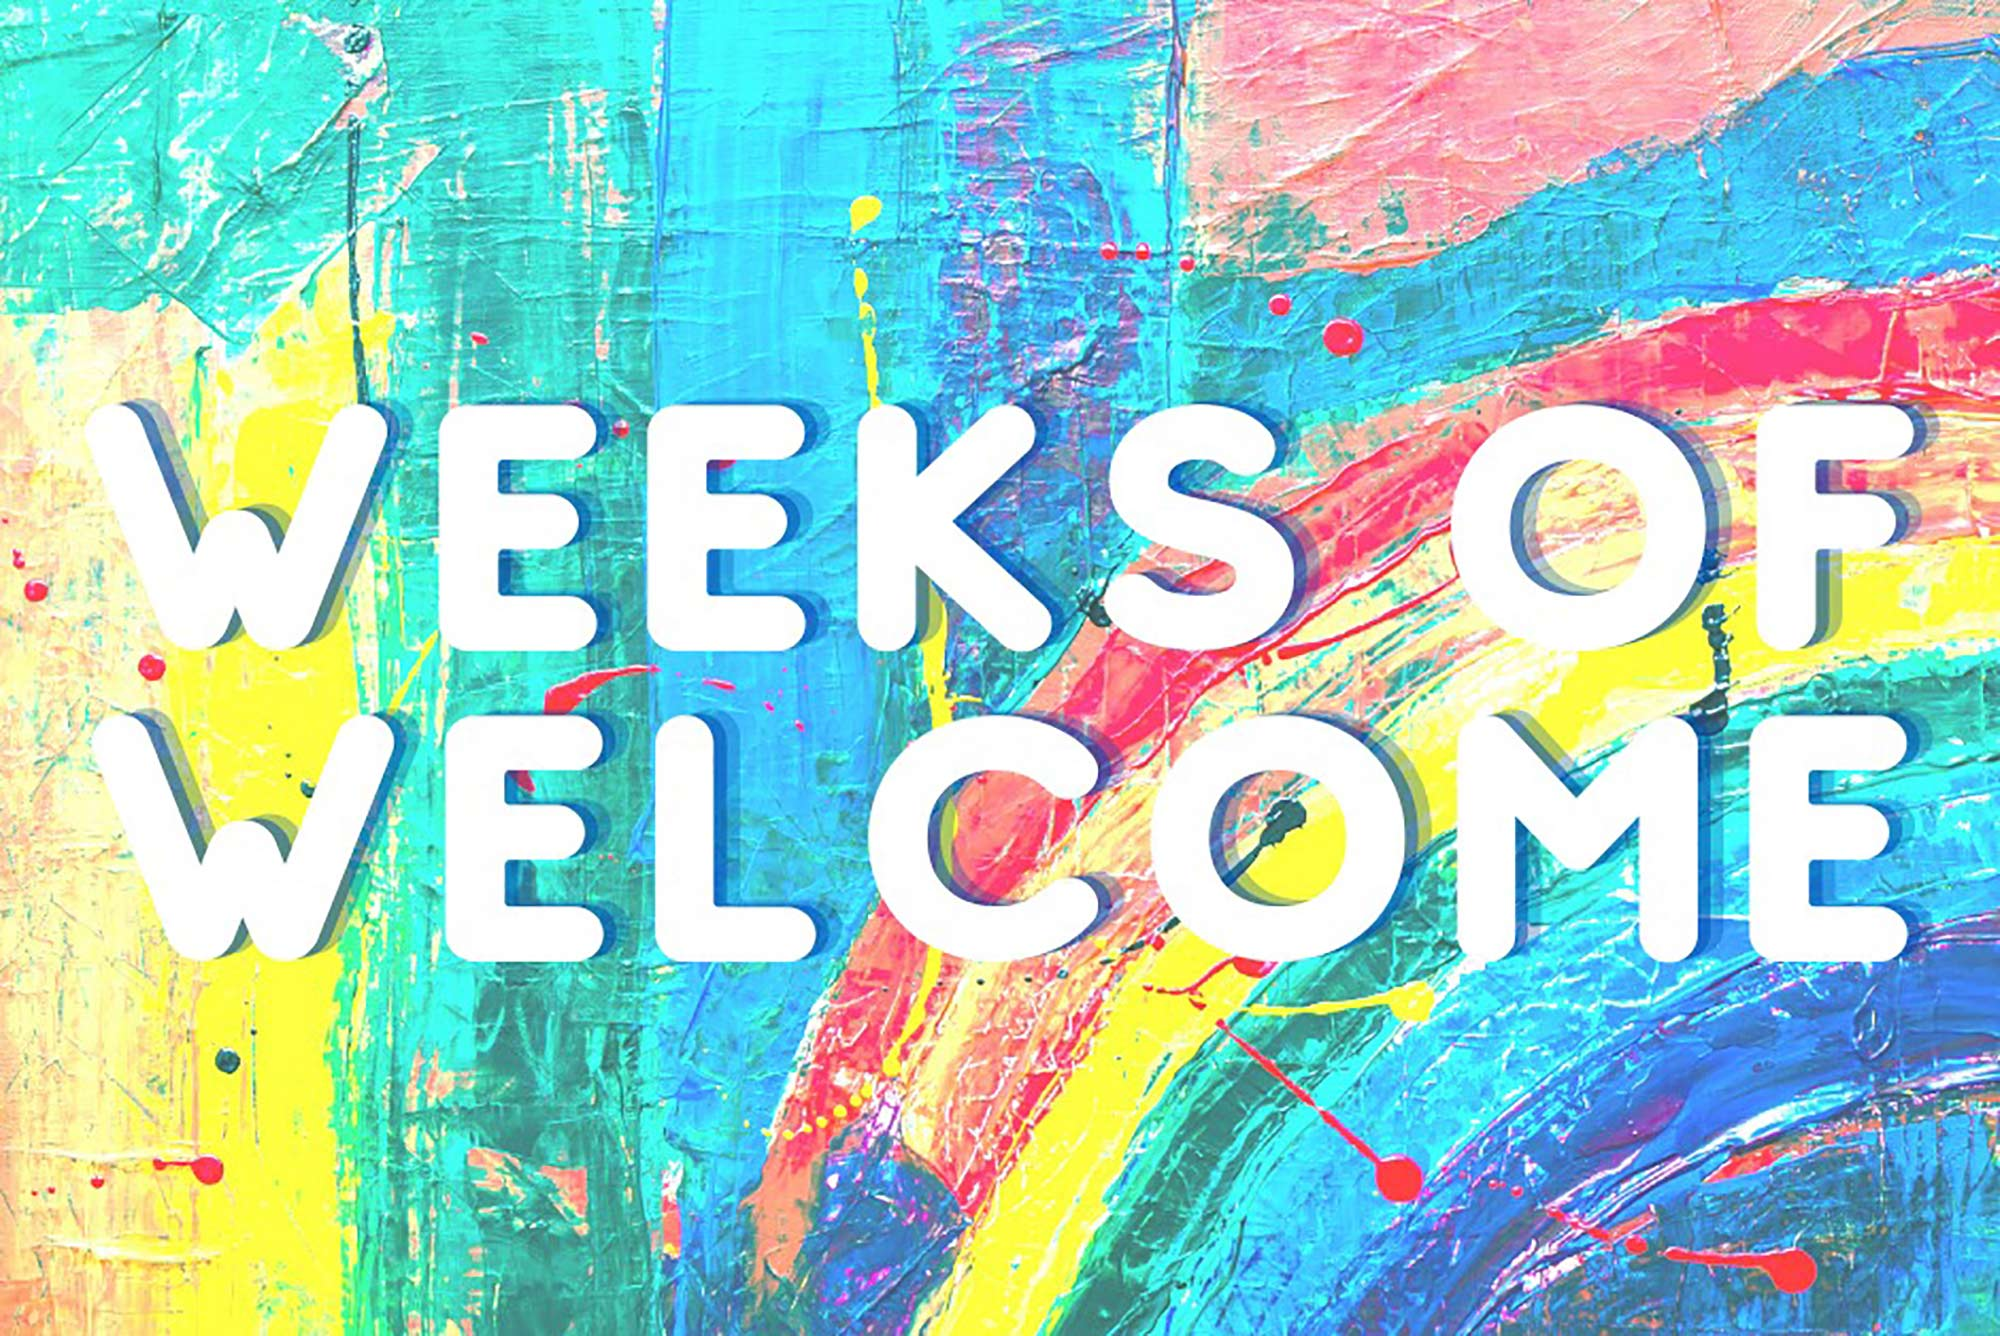 """Weeks of Welcome"" in white rounded text on a painted rainbow background."